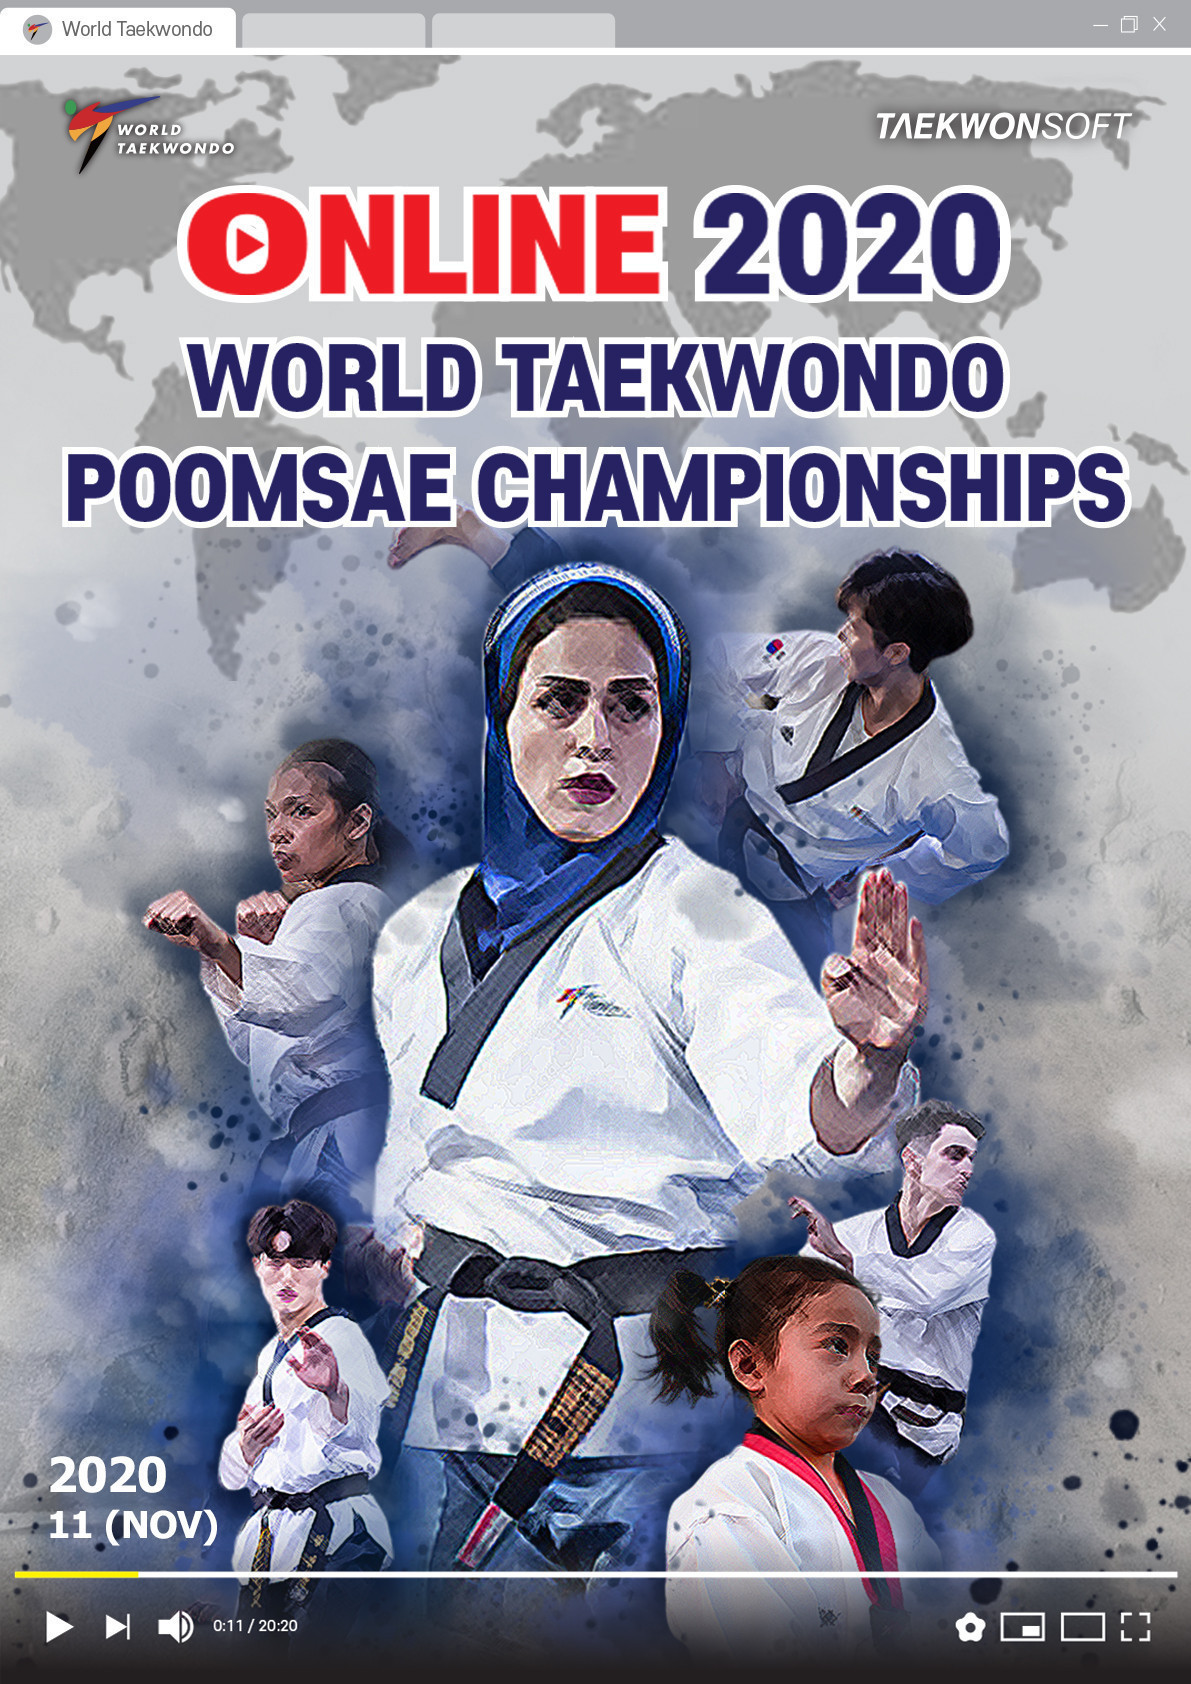 The event will be fully virtual for the first time ©World Taekwondo